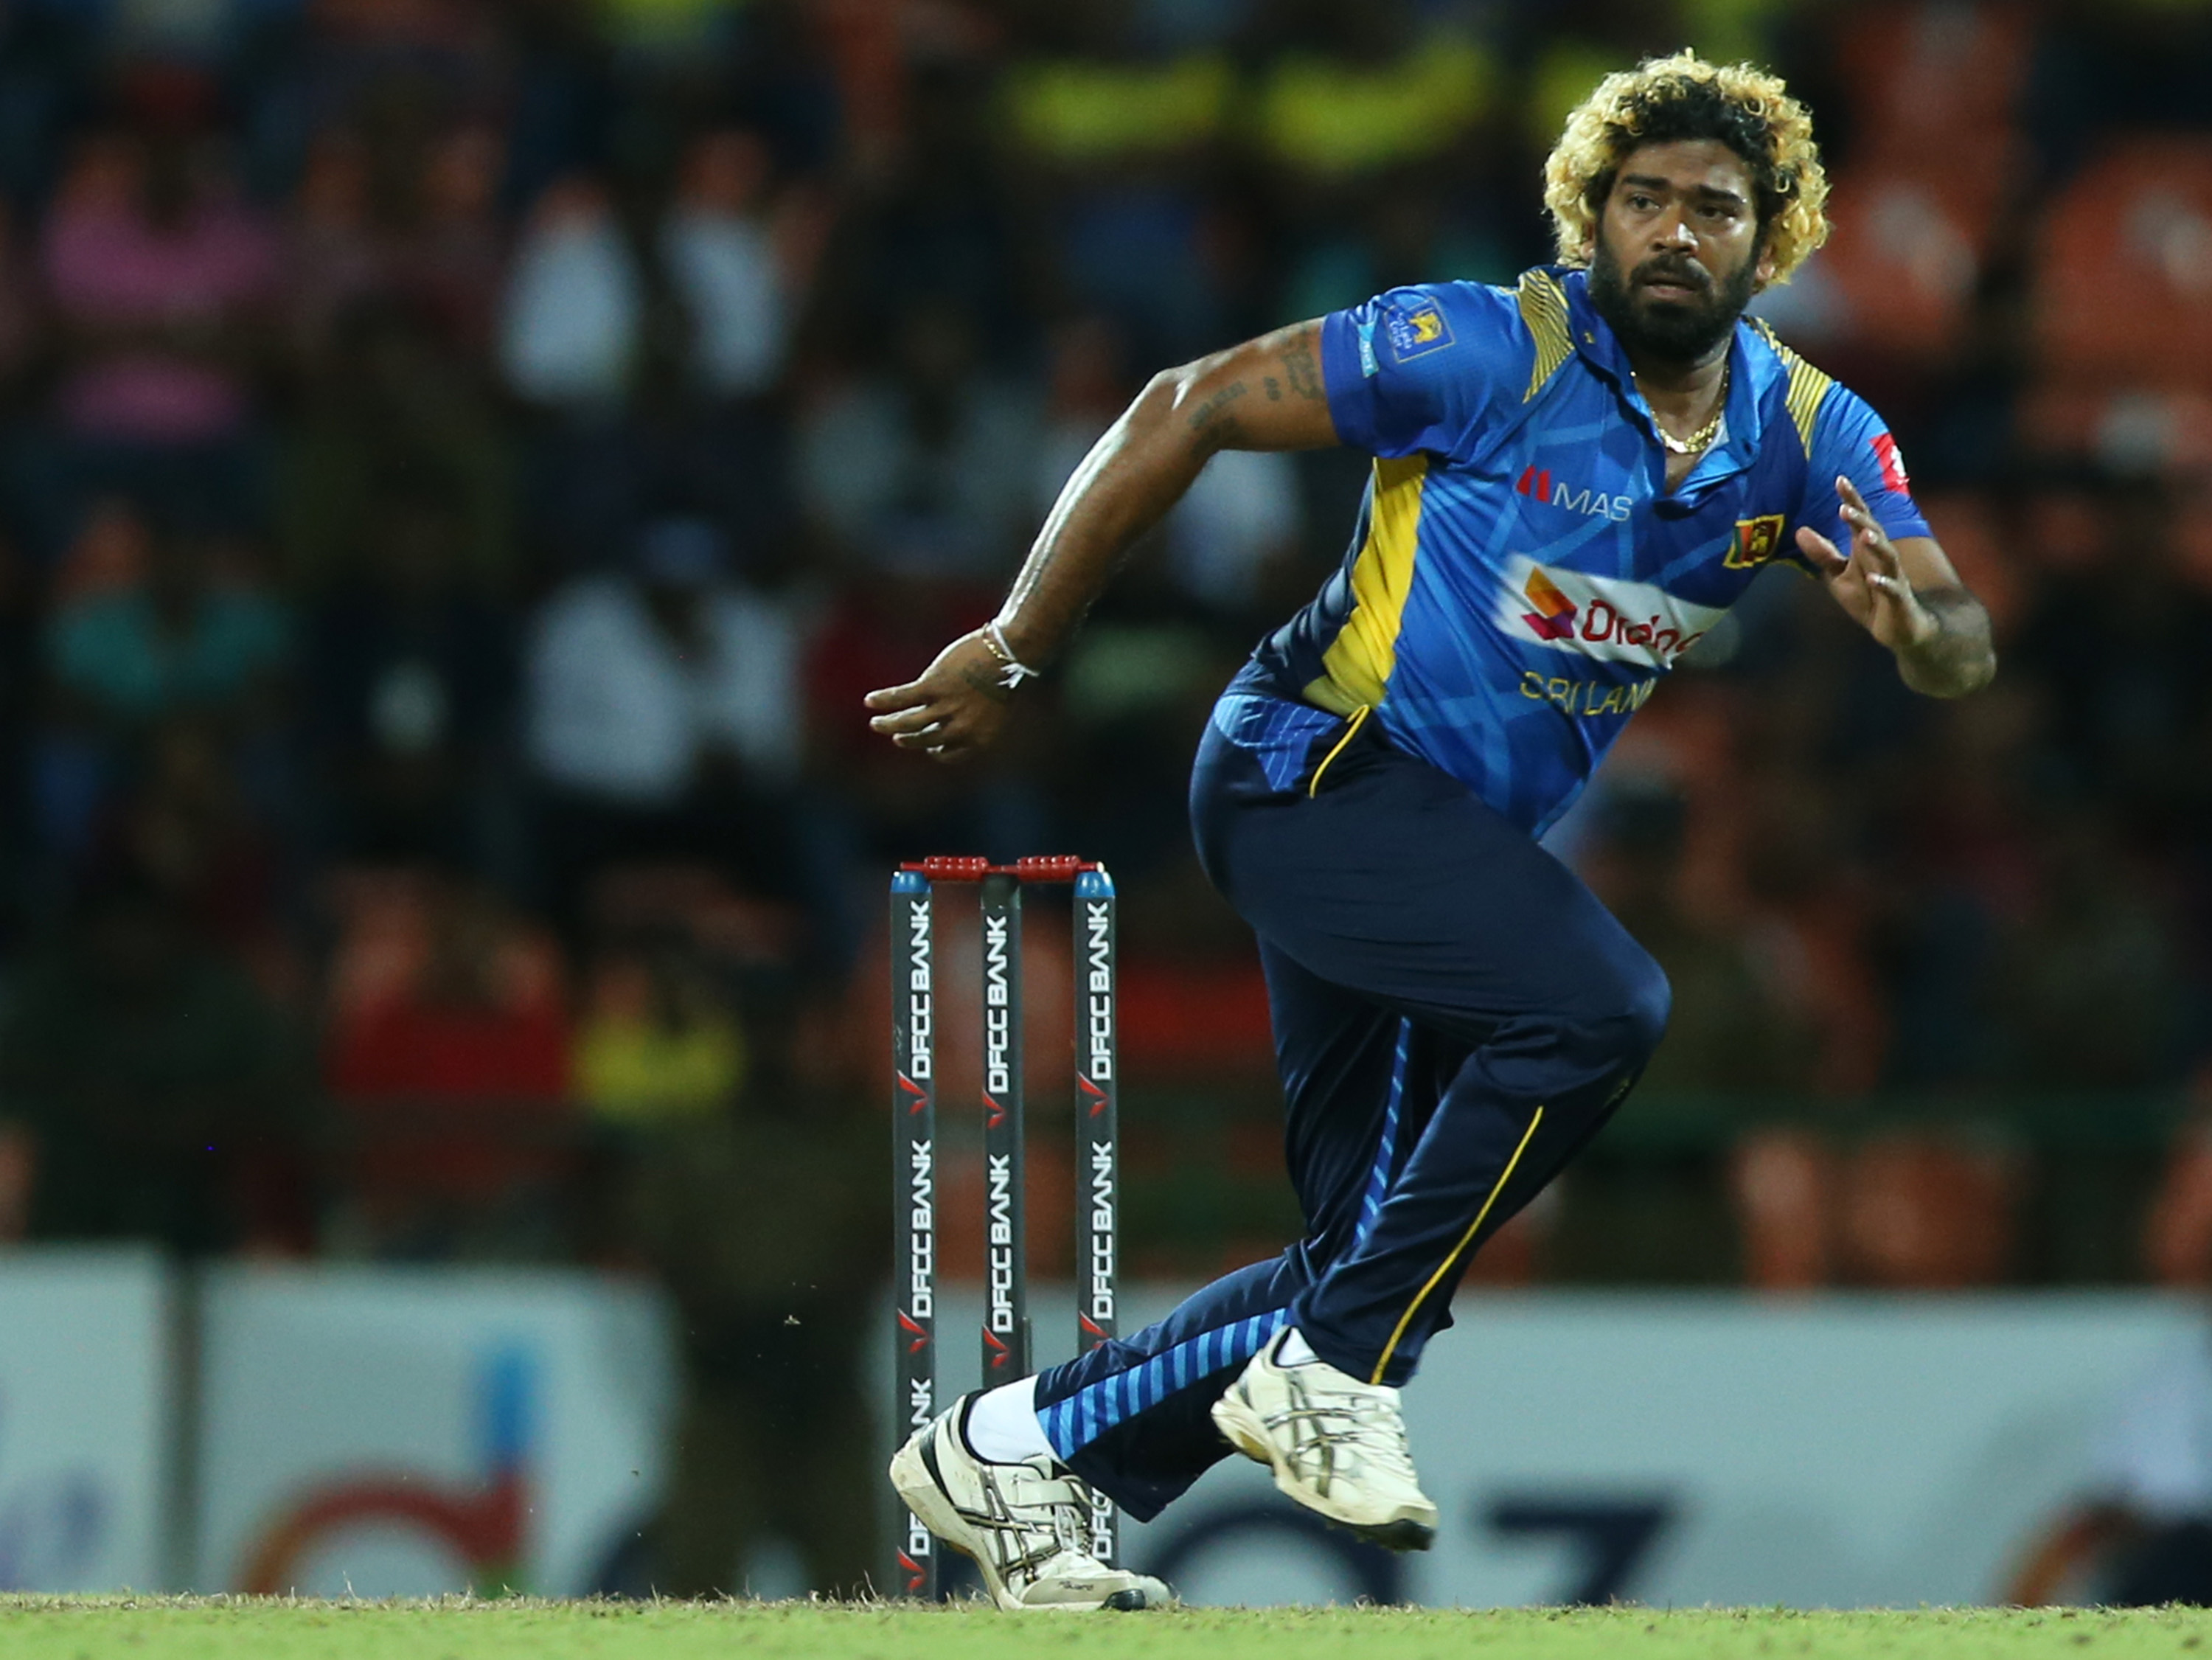 'Losing doesn't matter as long as the team shows character' – Malinga